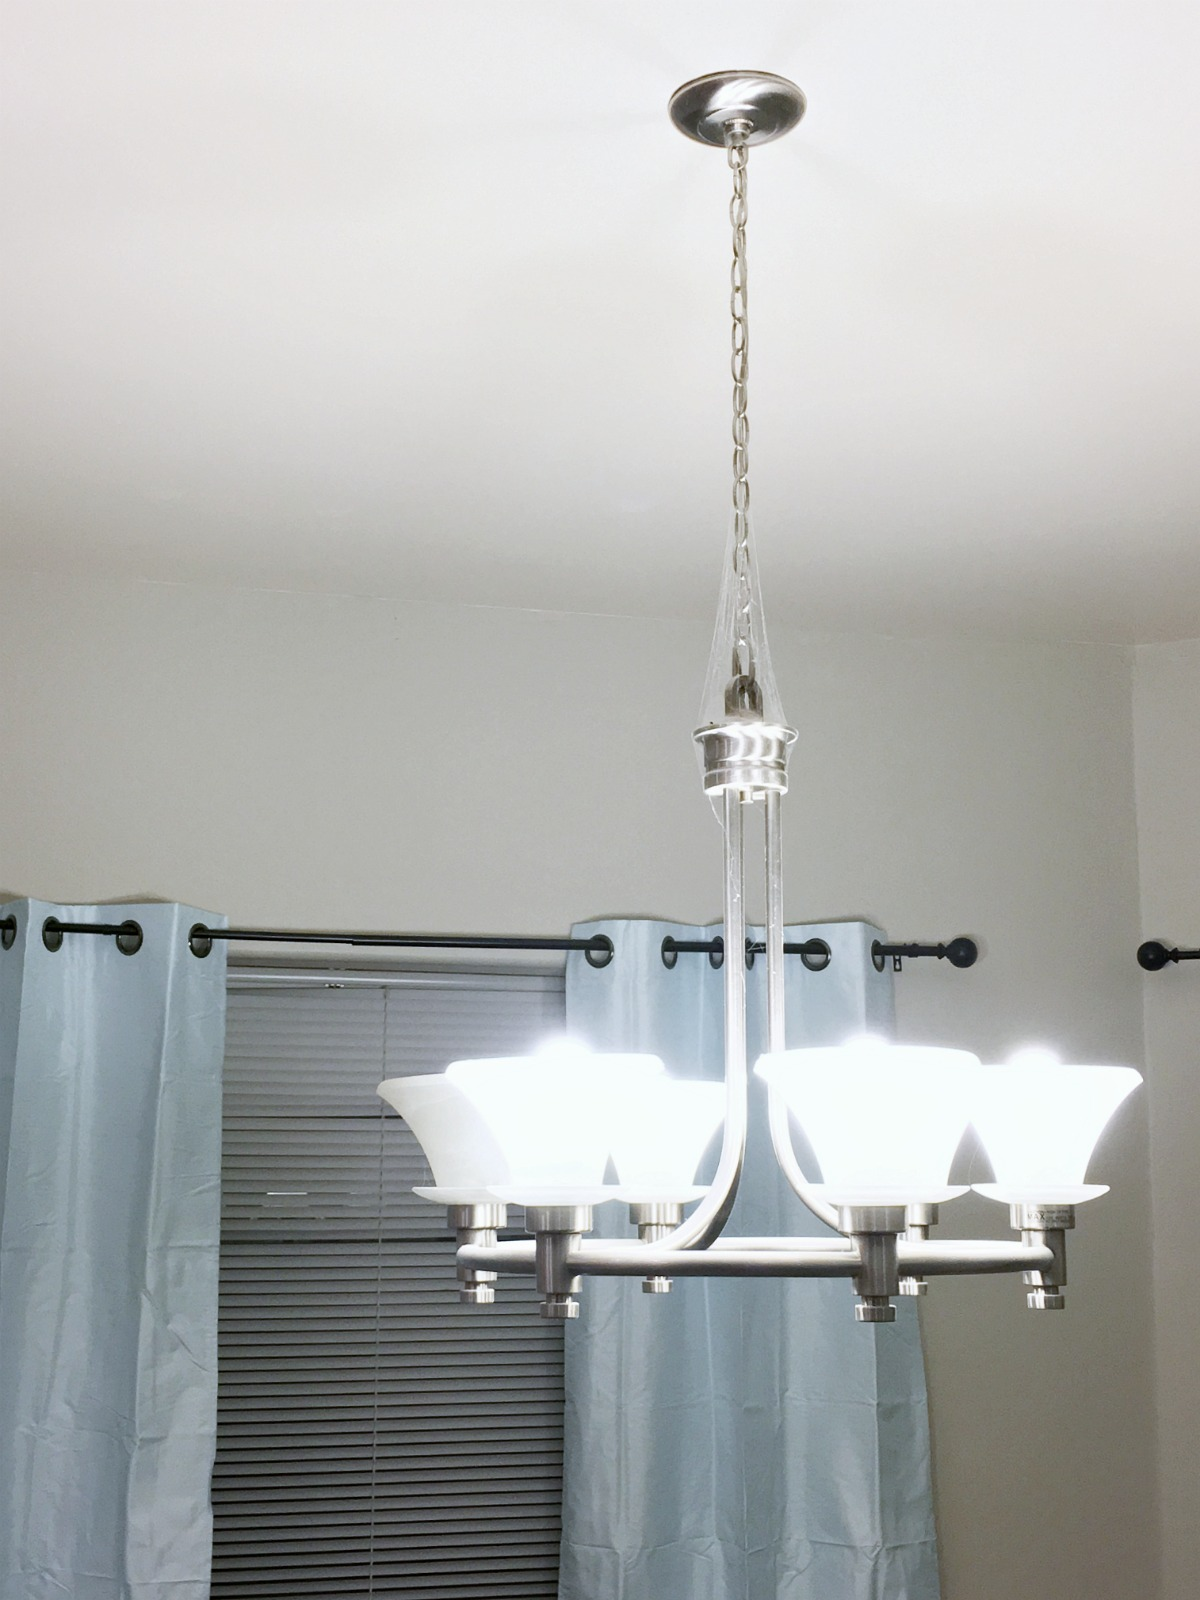 Home improvement how to update a light fixture classy for Updating bathroom light fixtures